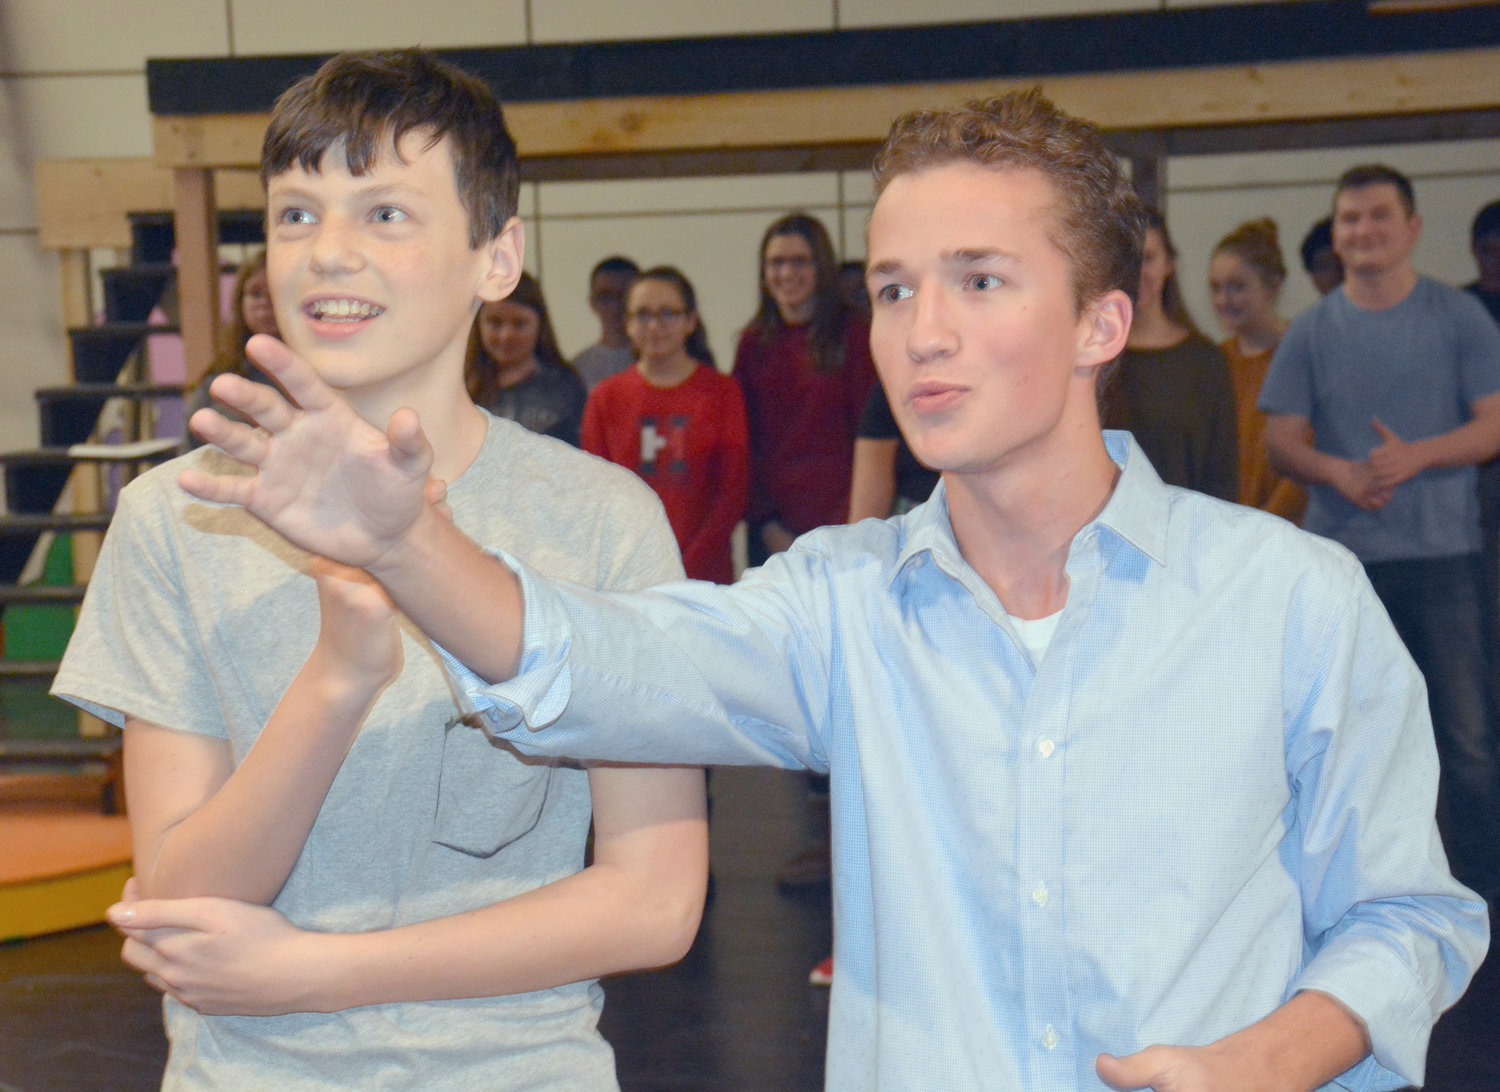 "DR. SEUSS ON THE LOOSE — Clinton High School students, Landon Stilz (JoJo) and Jack Drejza (The Cat in the Hat) rehearse for Clinton High School's upcoming musical presentation, ""Seussical the Musical"" at the Clinton High School Theater.  Opening night is March 7, with additional performances on March 8 and 9. Box office opens at 6 p.m., curtain goes up at 7:30 p.m."